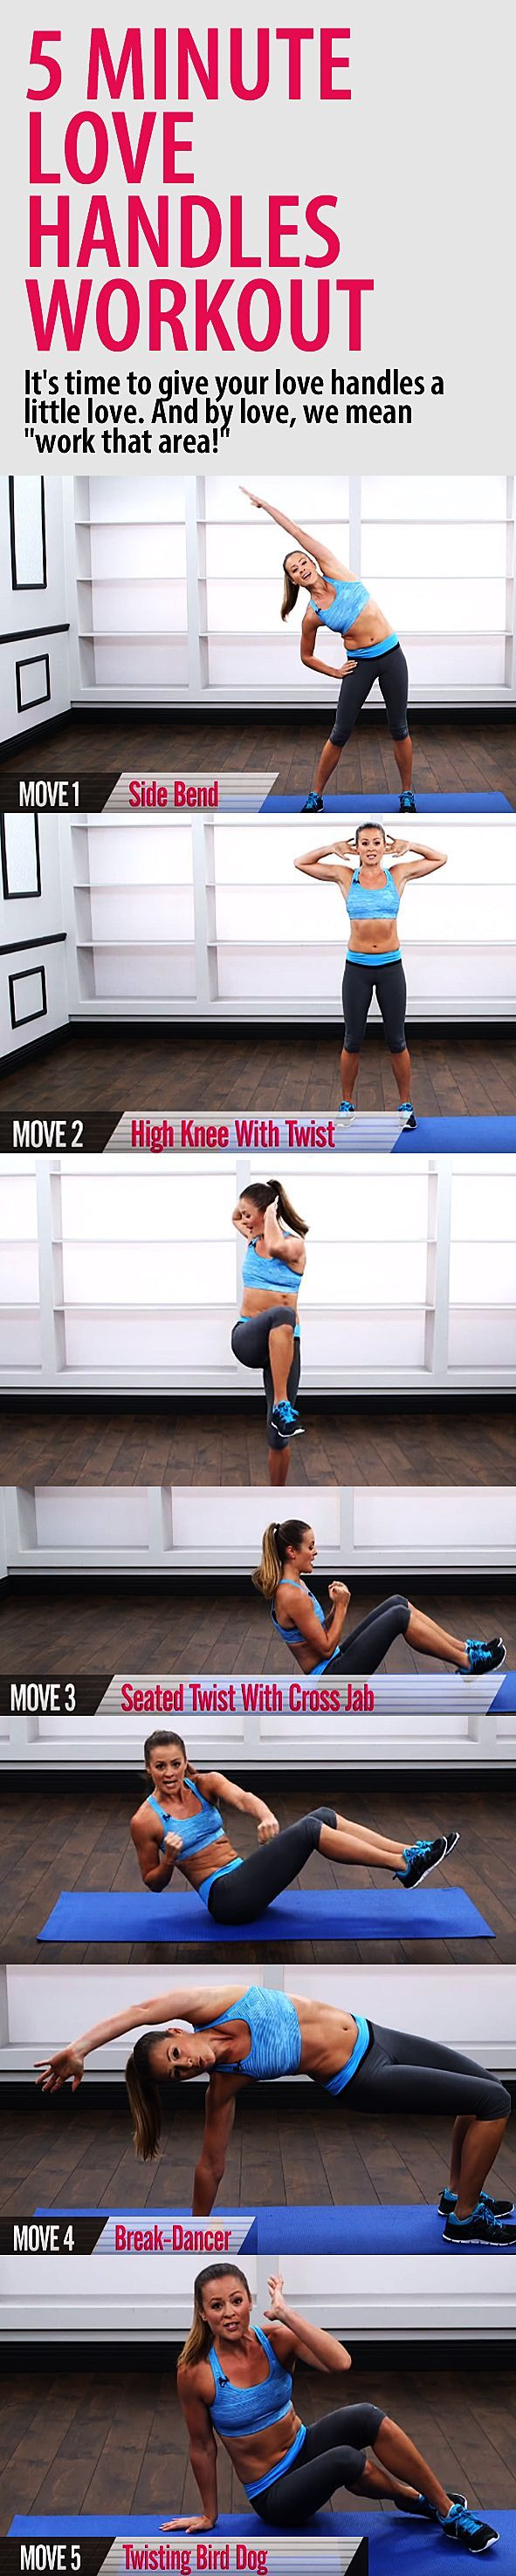 5 minute LOVE HANDLES workout. Get a stronger core and chiseled waist with these 5 great moves that target the obliques